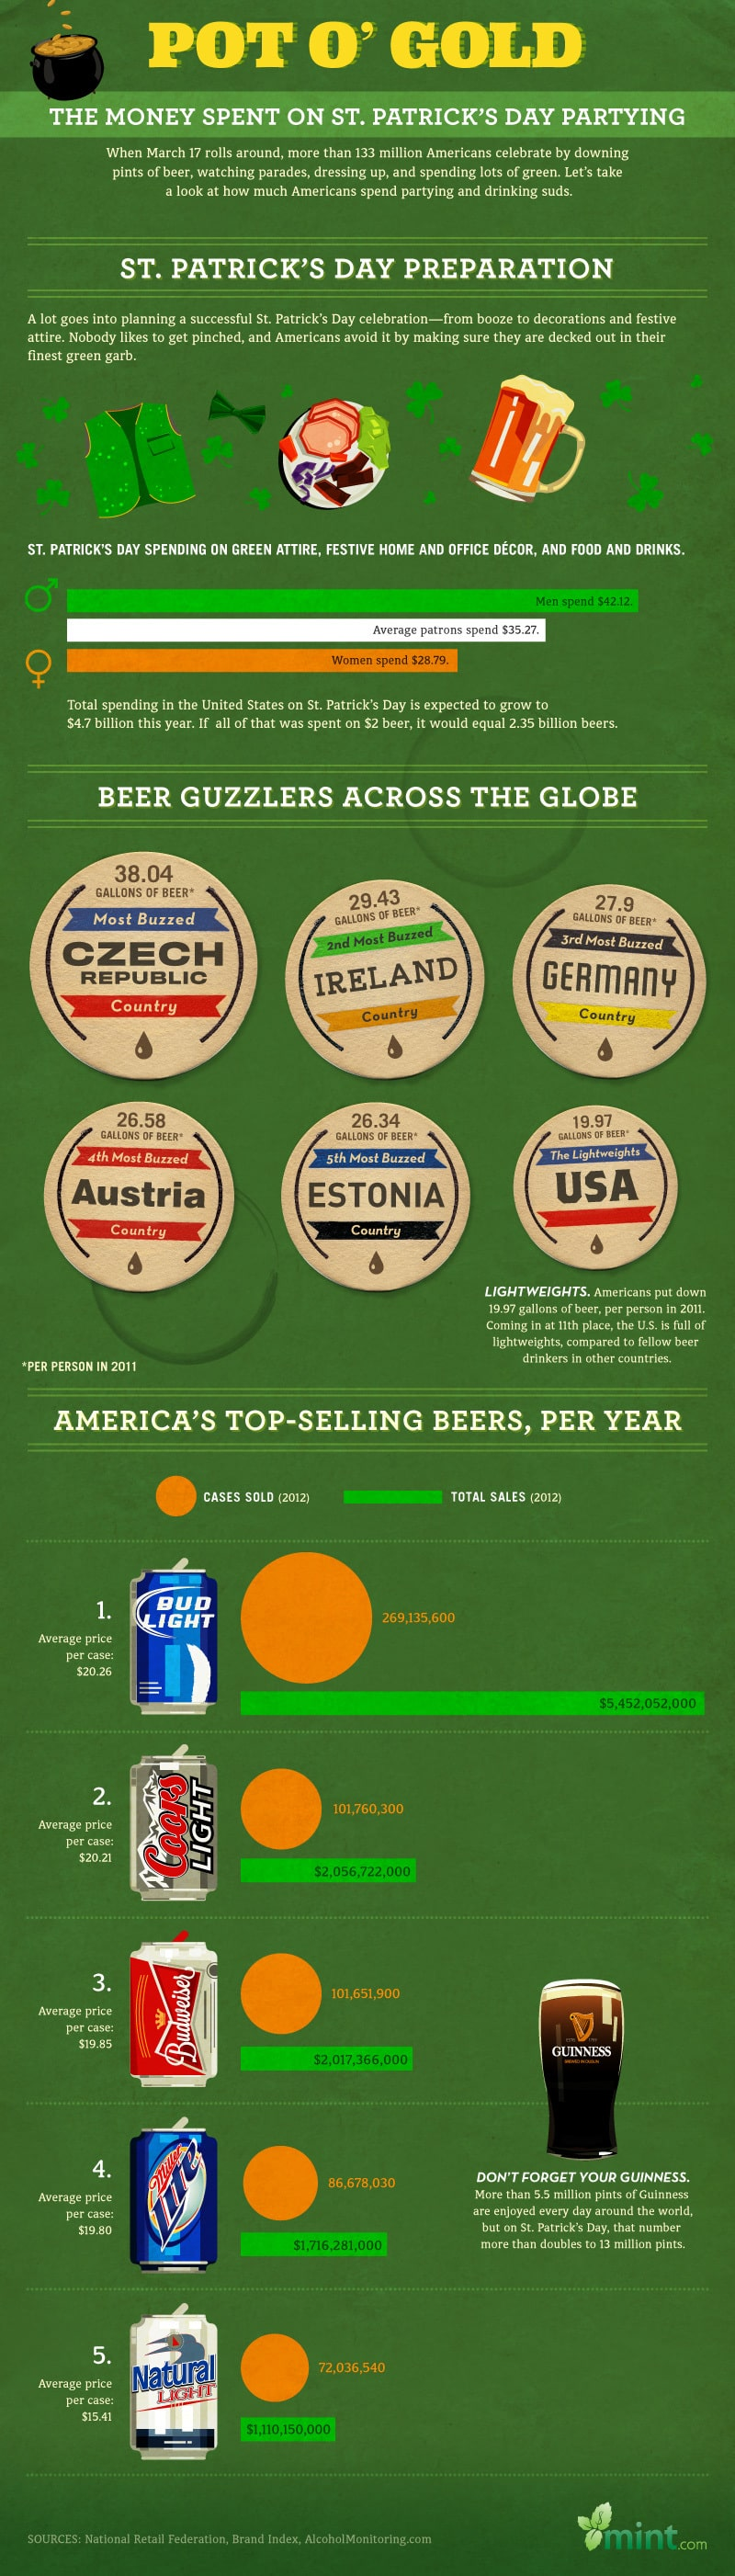 St. Patrick's Day Beer Infographic